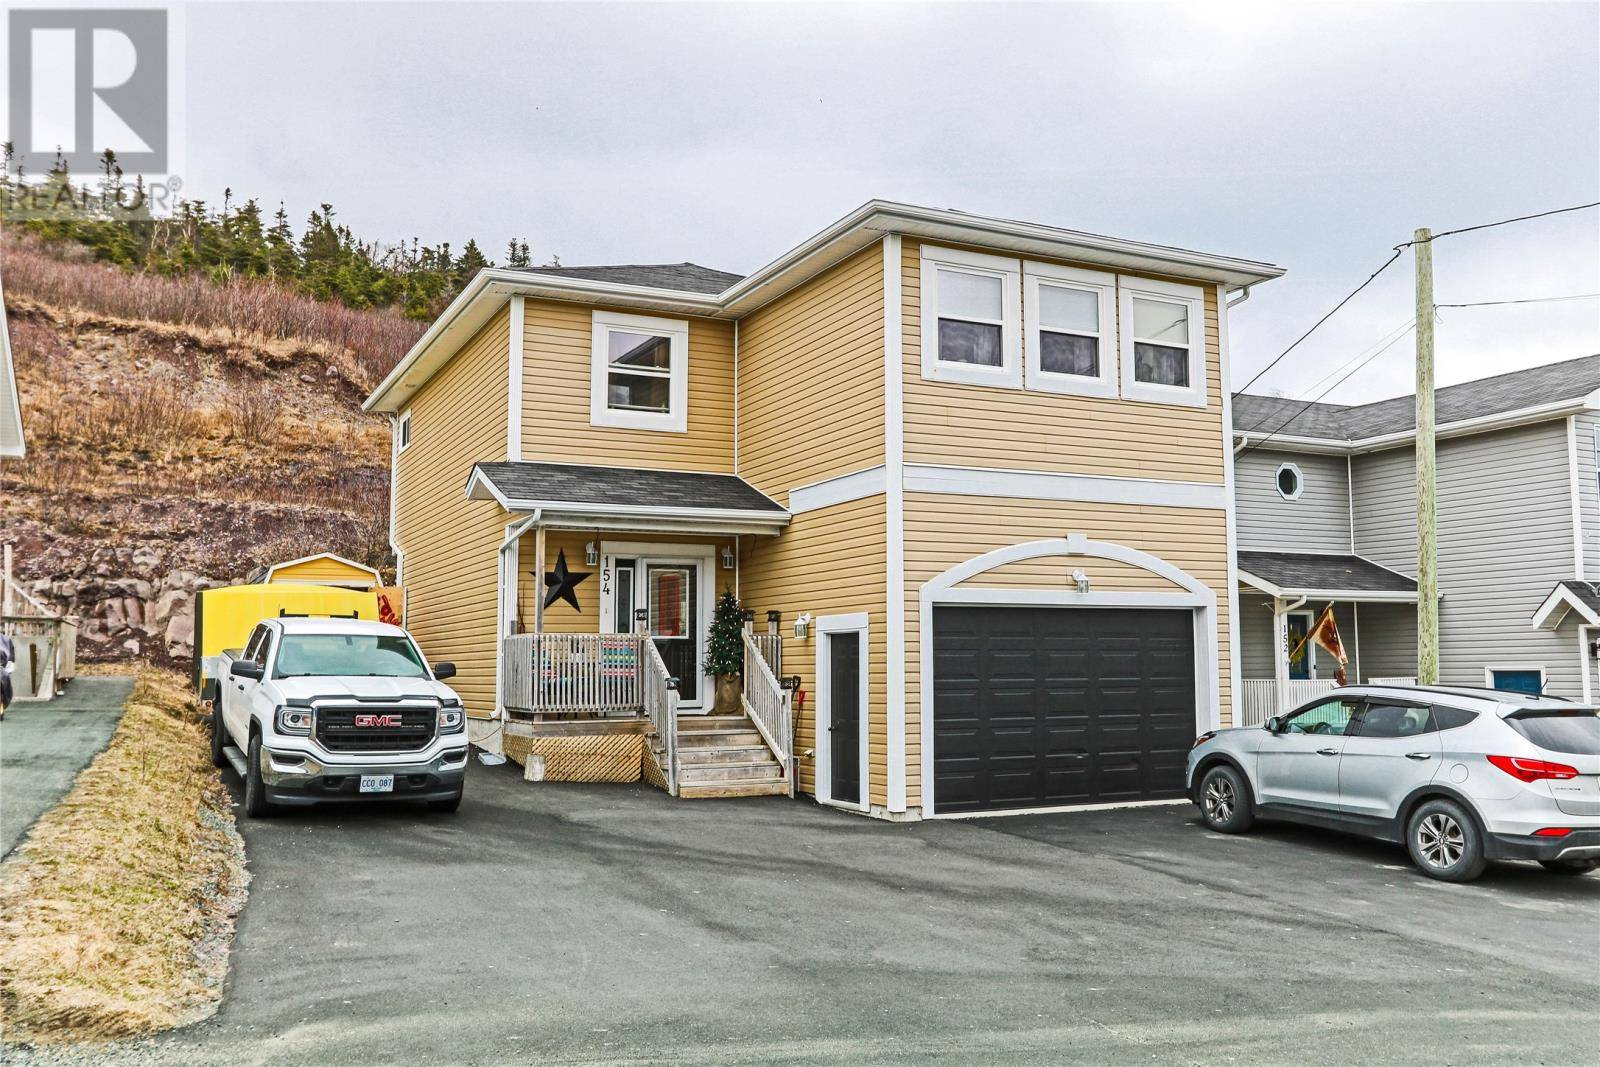 House for sale at 154 Maddox Cove Rd Maddox Newfoundland - MLS: 1199984